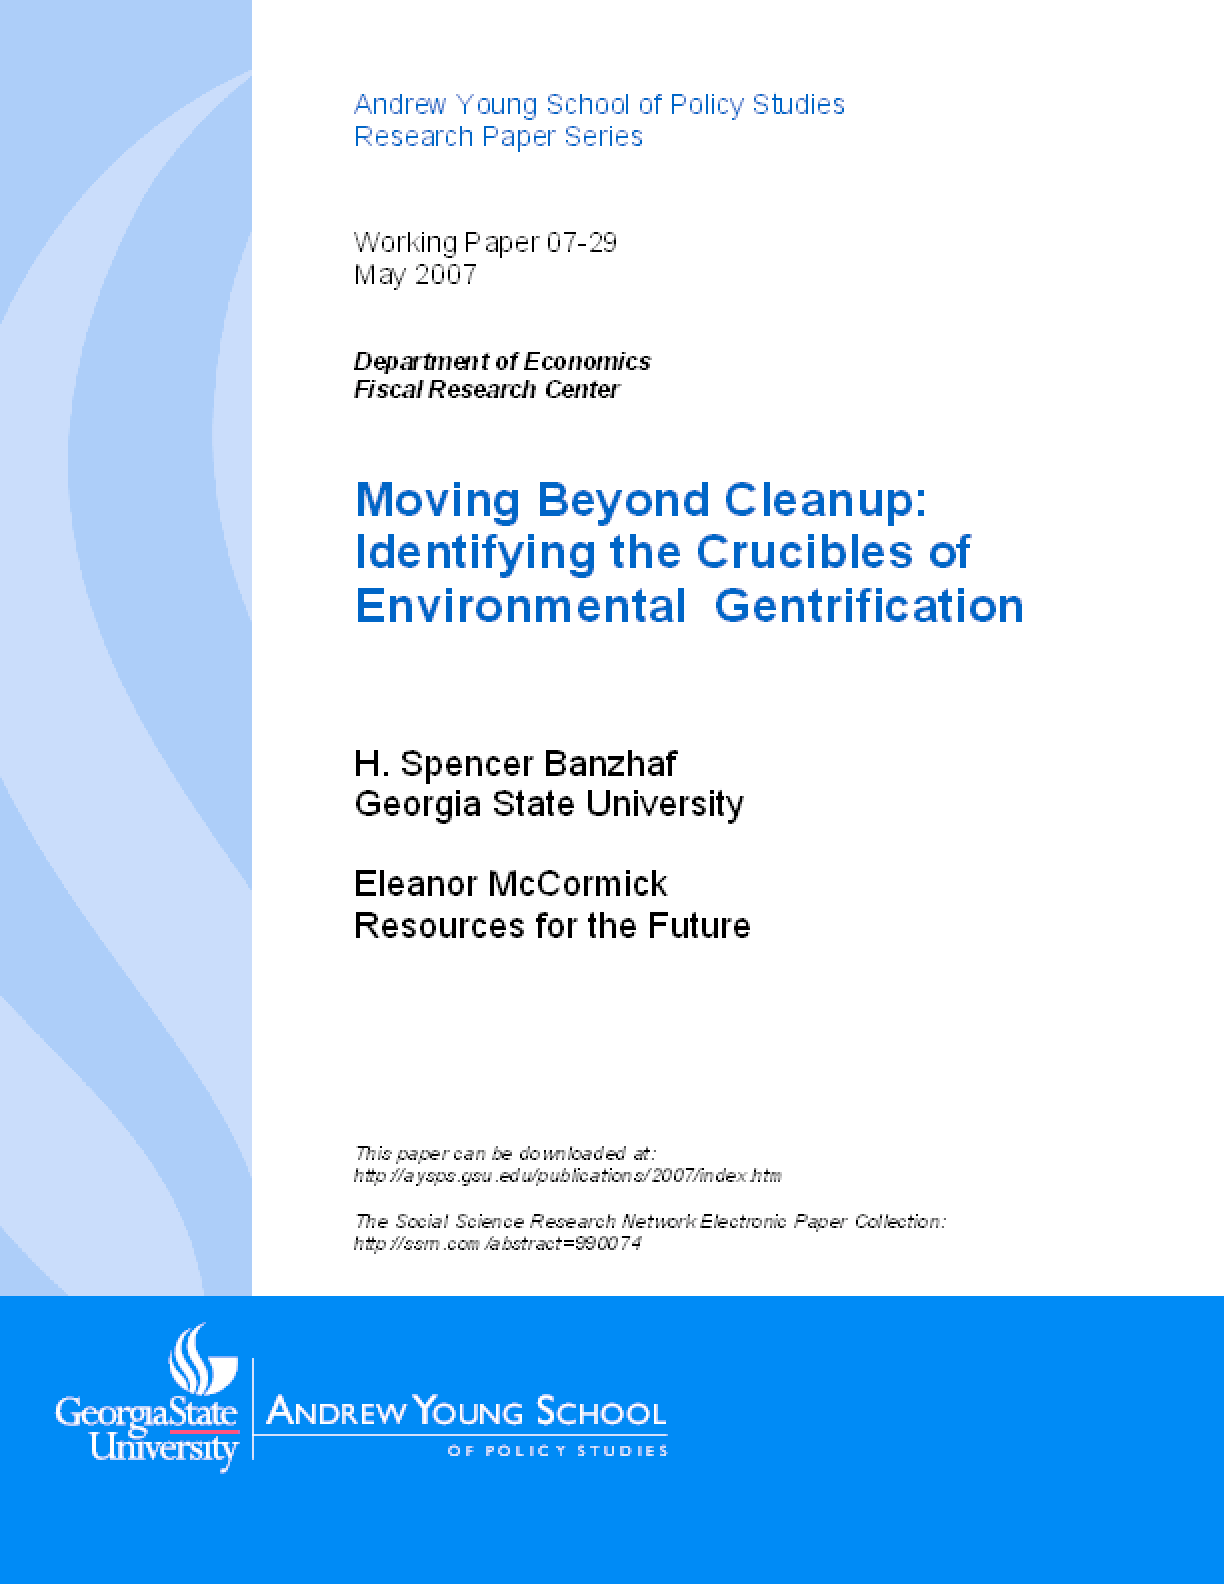 Moving Beyond Cleanup: Identifying the Crucibles of Environmental Gentrification